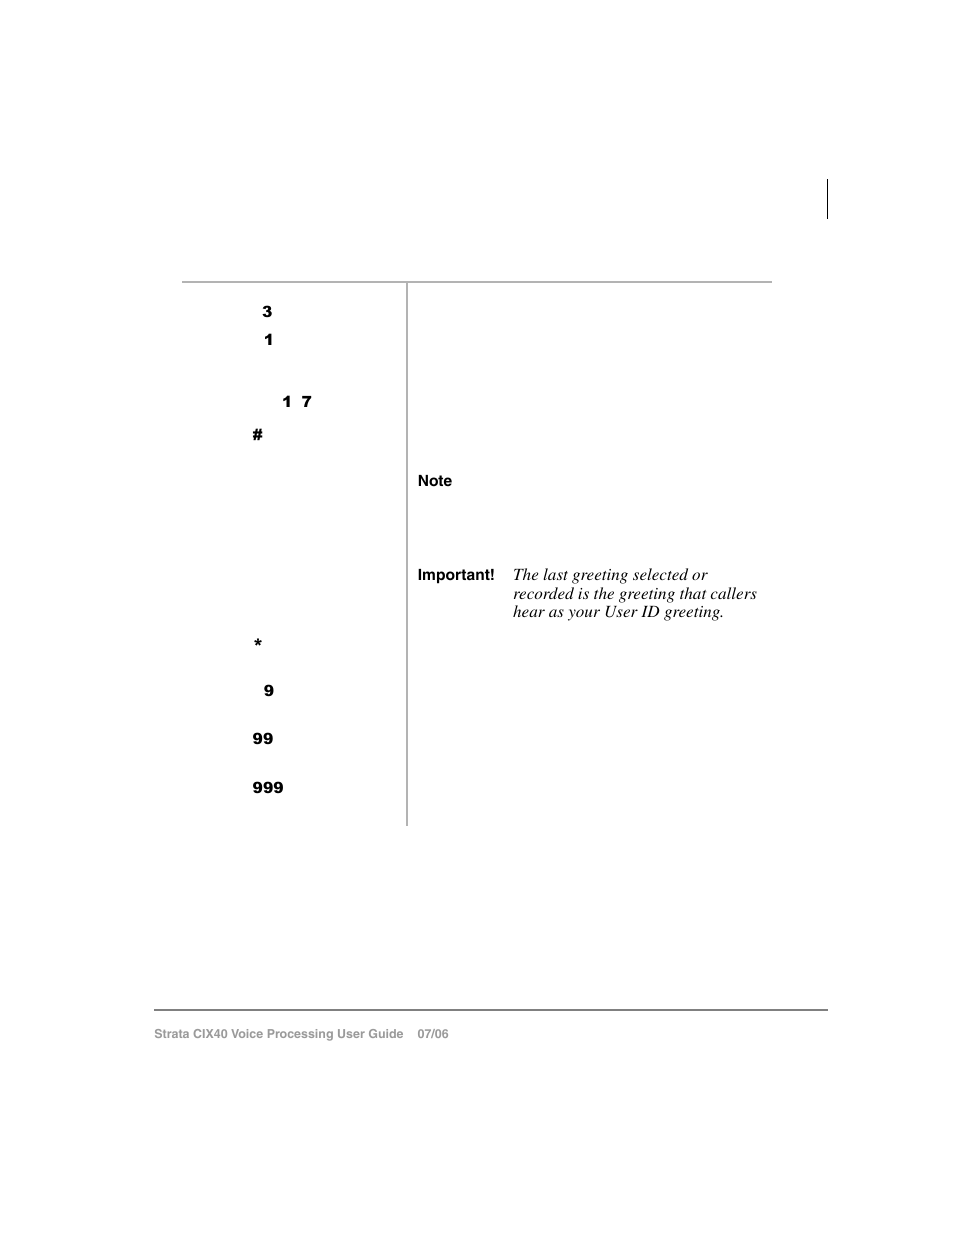 Change your greeting selection | Toshiba Strata CIX40 User Manual | Page 61  / 96